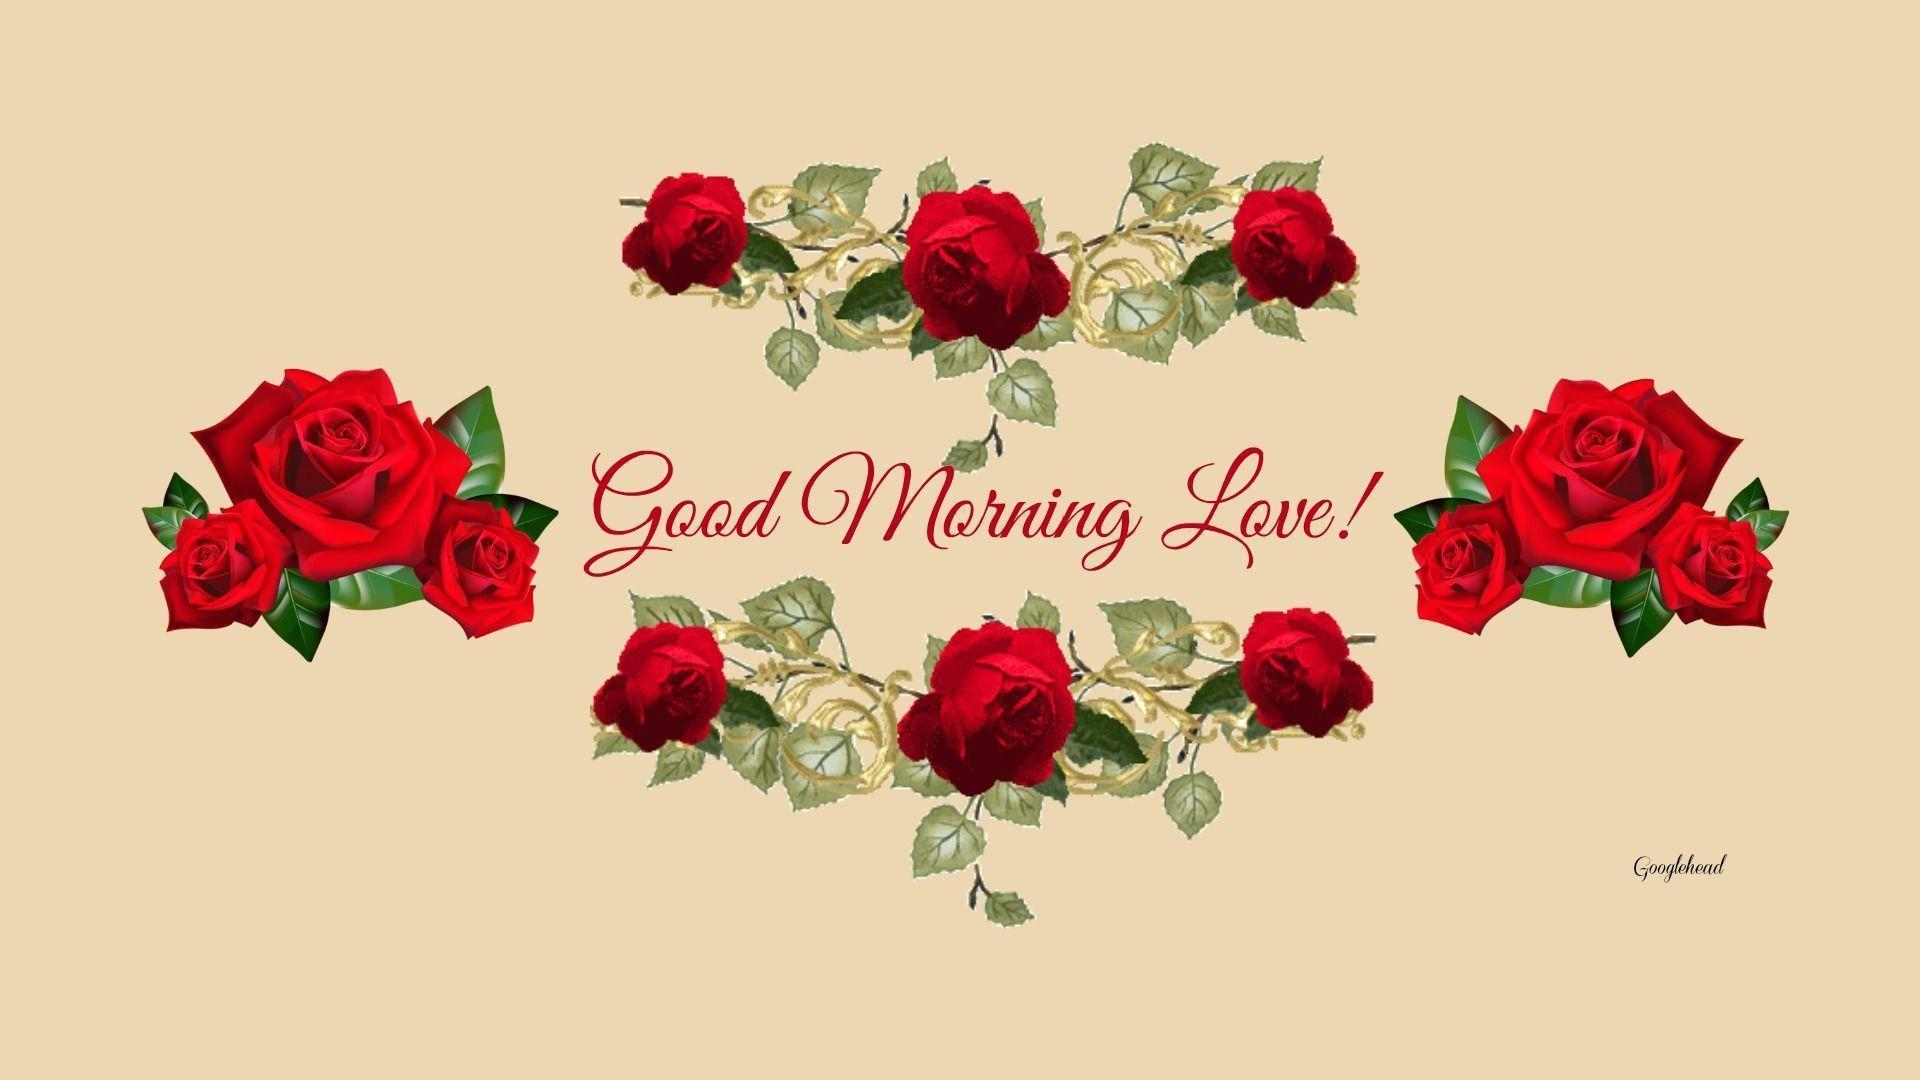 Love Wallpaper Good Morning : Wallpapers Good Morning Love - Wallpaper cave